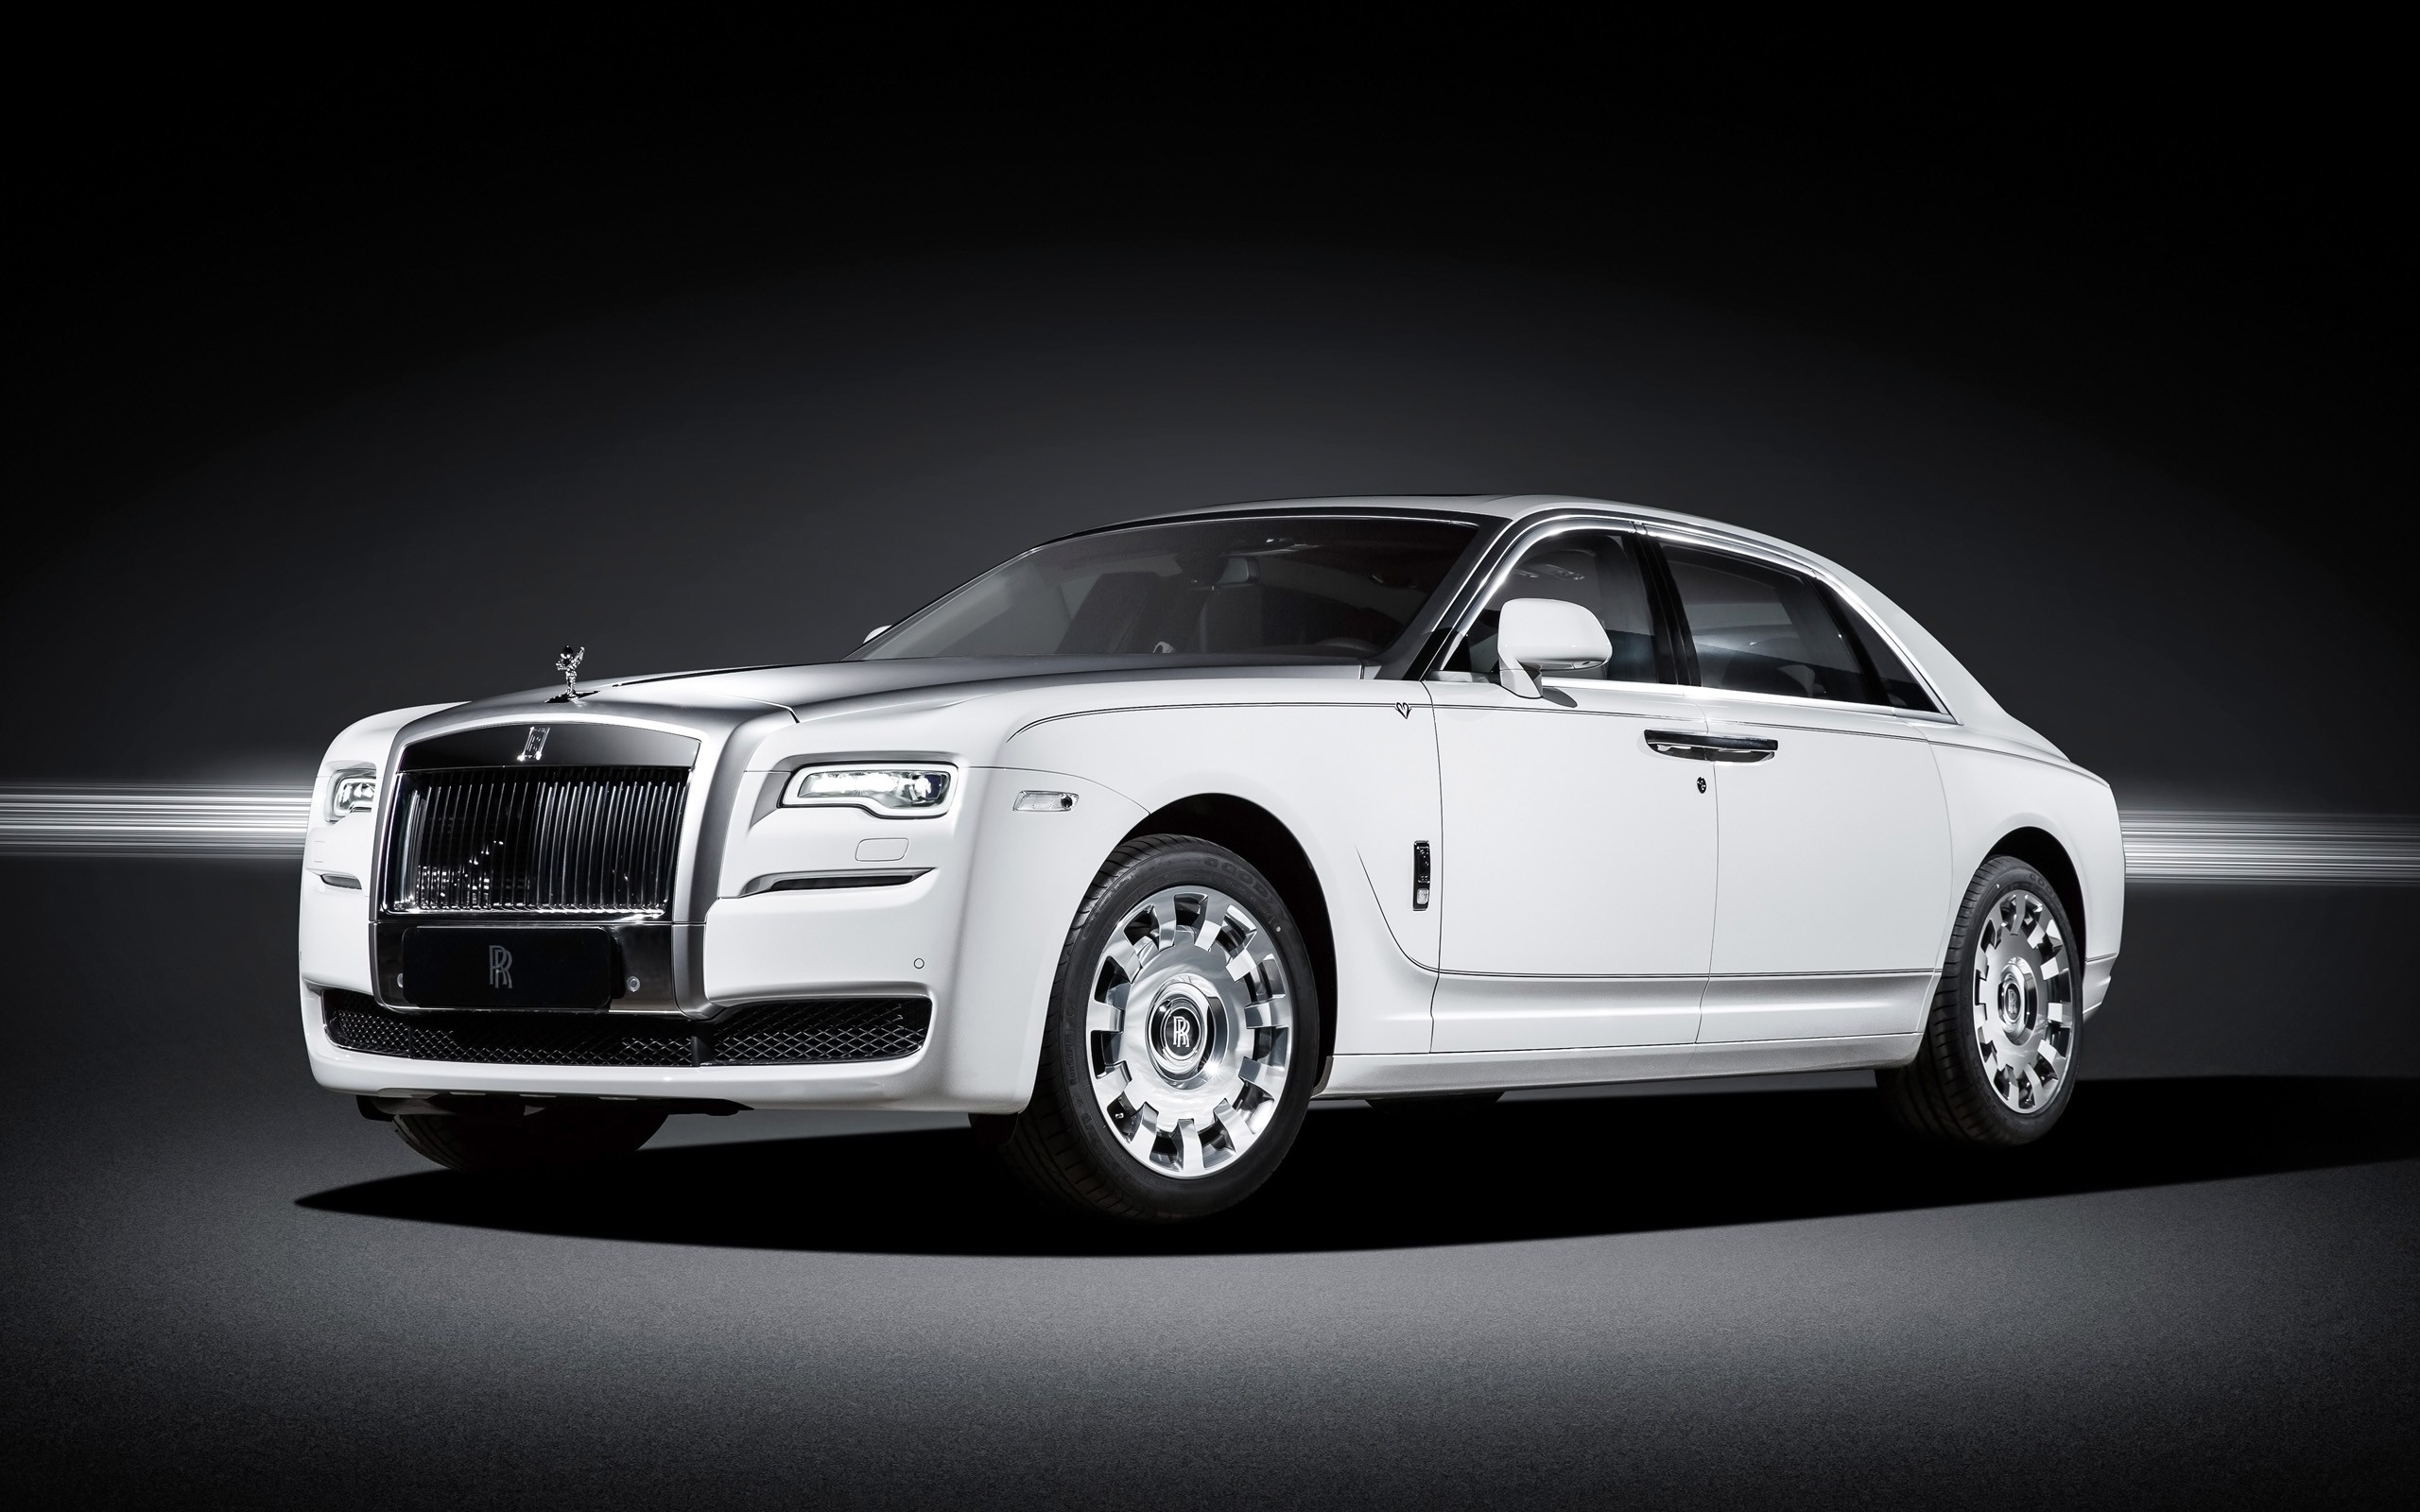 2016 rolls royce ghost eternal love wallpaper hd car wallpapers id 6158. Black Bedroom Furniture Sets. Home Design Ideas